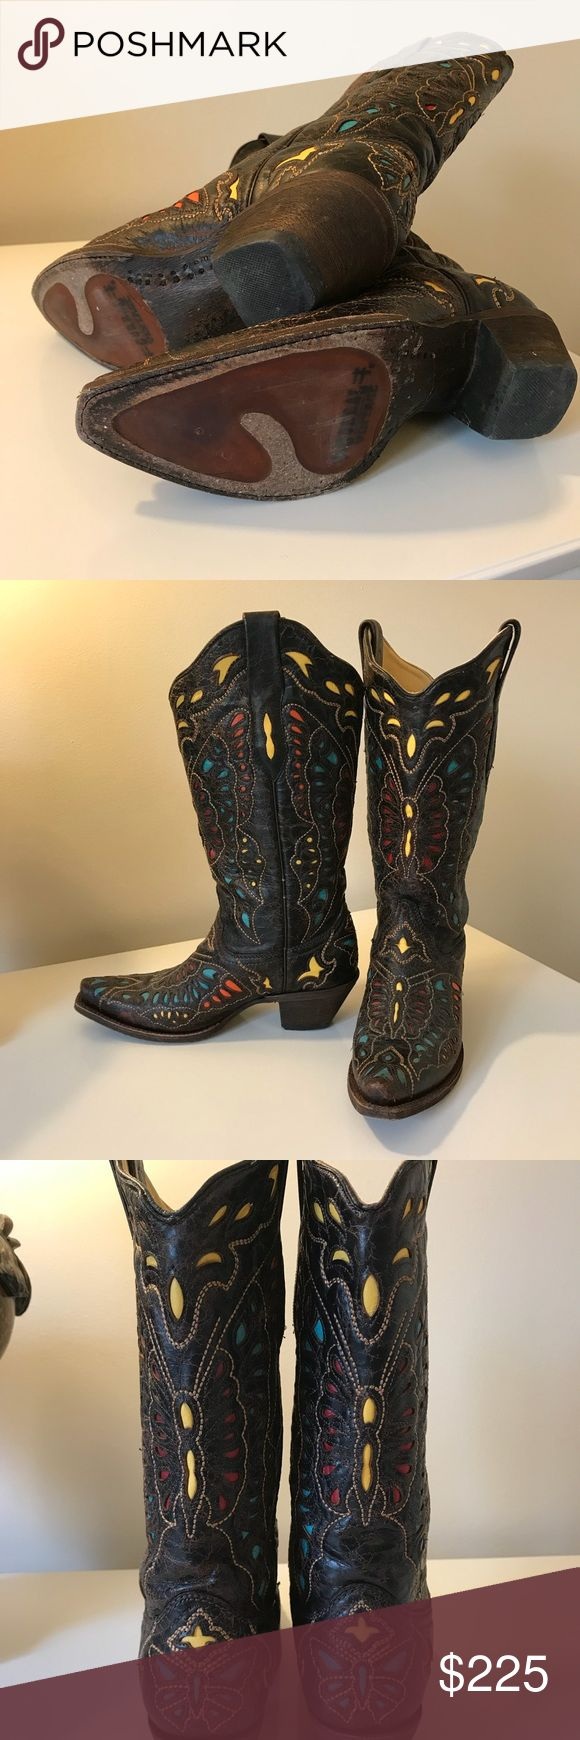 Registered Corral Vintage Cowboy Boots Stunning registered Corral vintage boots! Vibrant multi-colored with extensive detailing.  Real leather and made to last! These boots are registered, #29653.  Size 7M, only worn twice. corral vintage Shoes